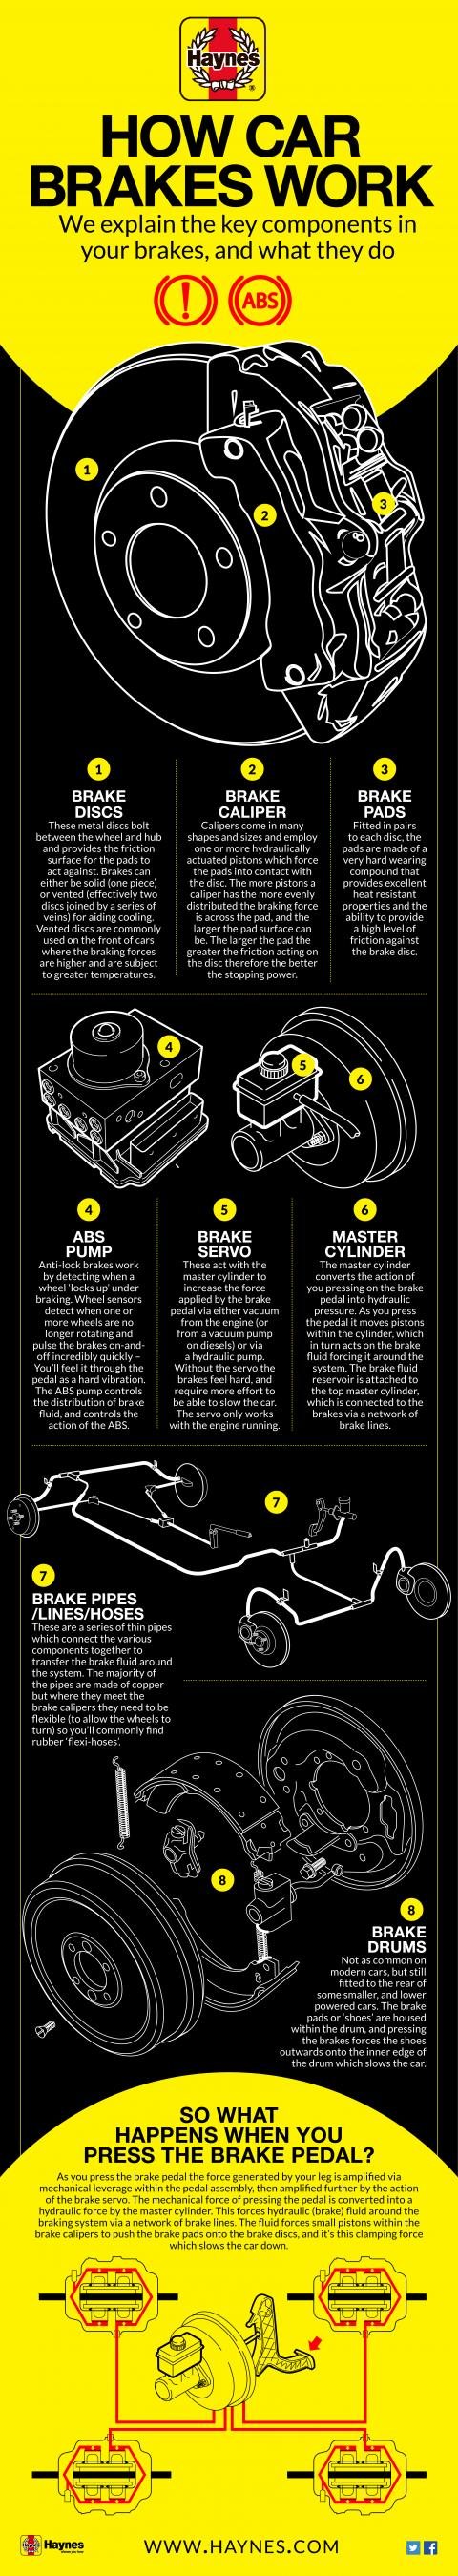 How do car brakes work? | Haynes Publishing